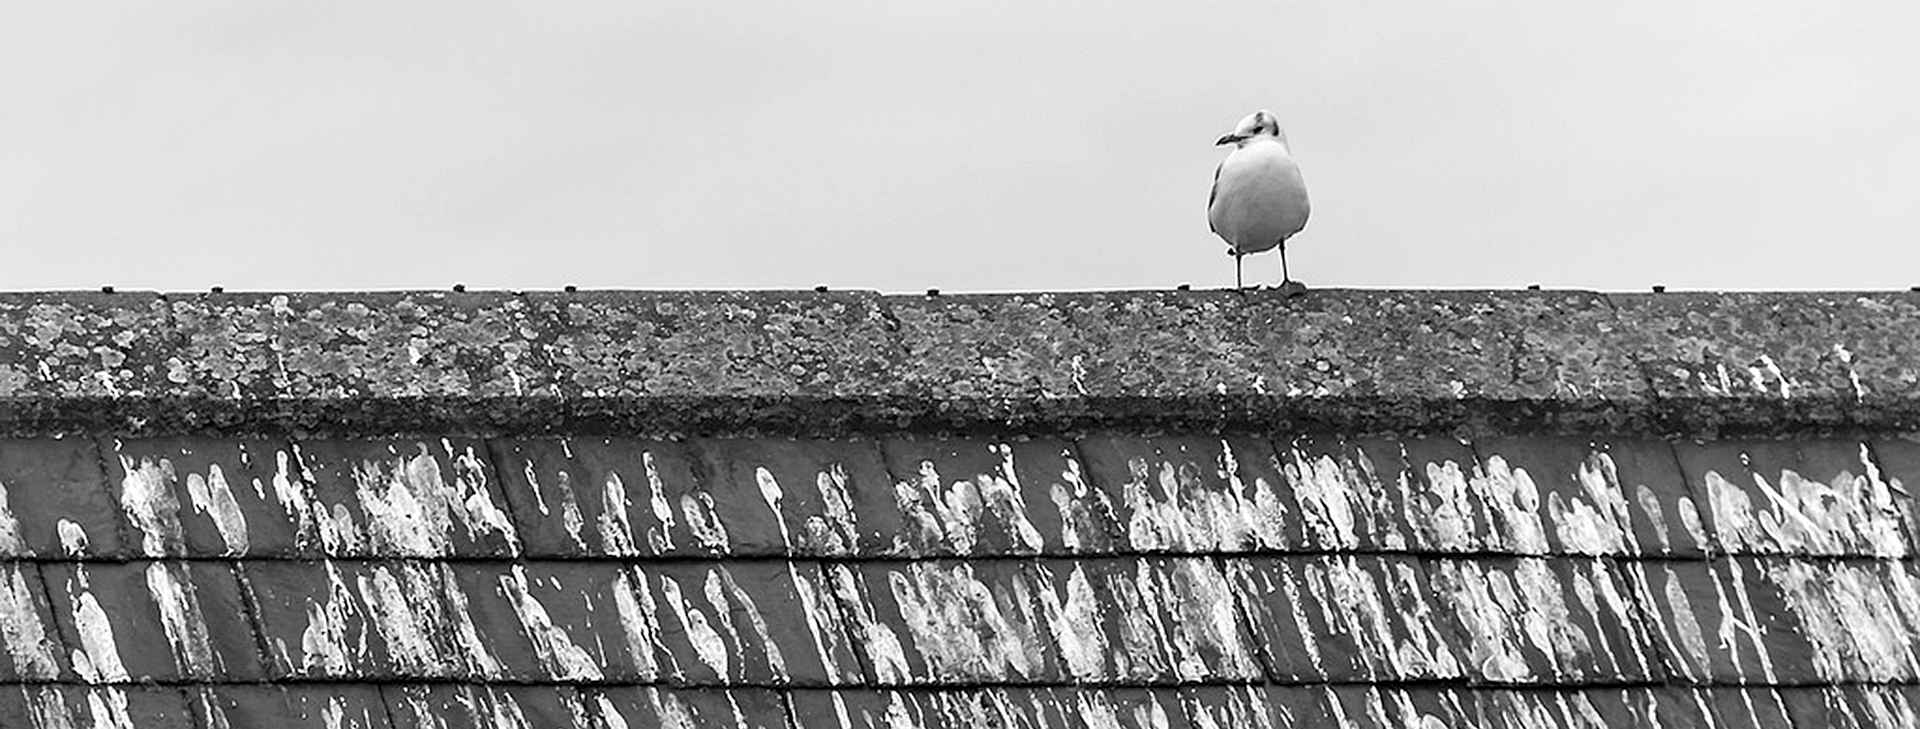 Seagull Droppings on roof